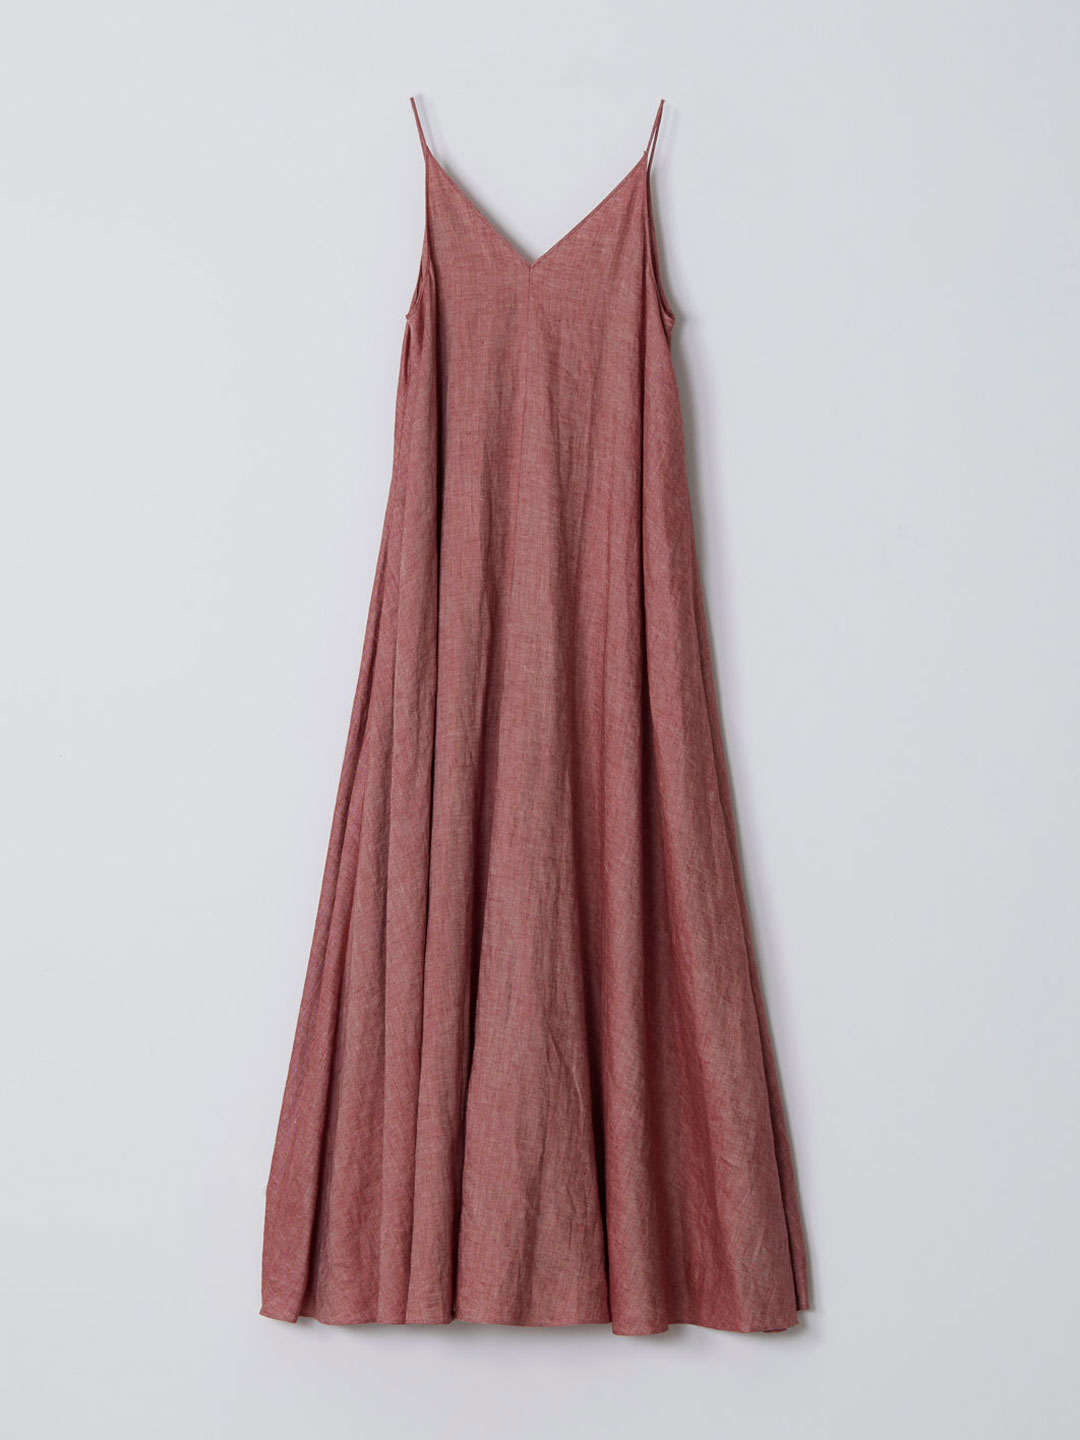 No 0223 Linen Cami Dress - Red